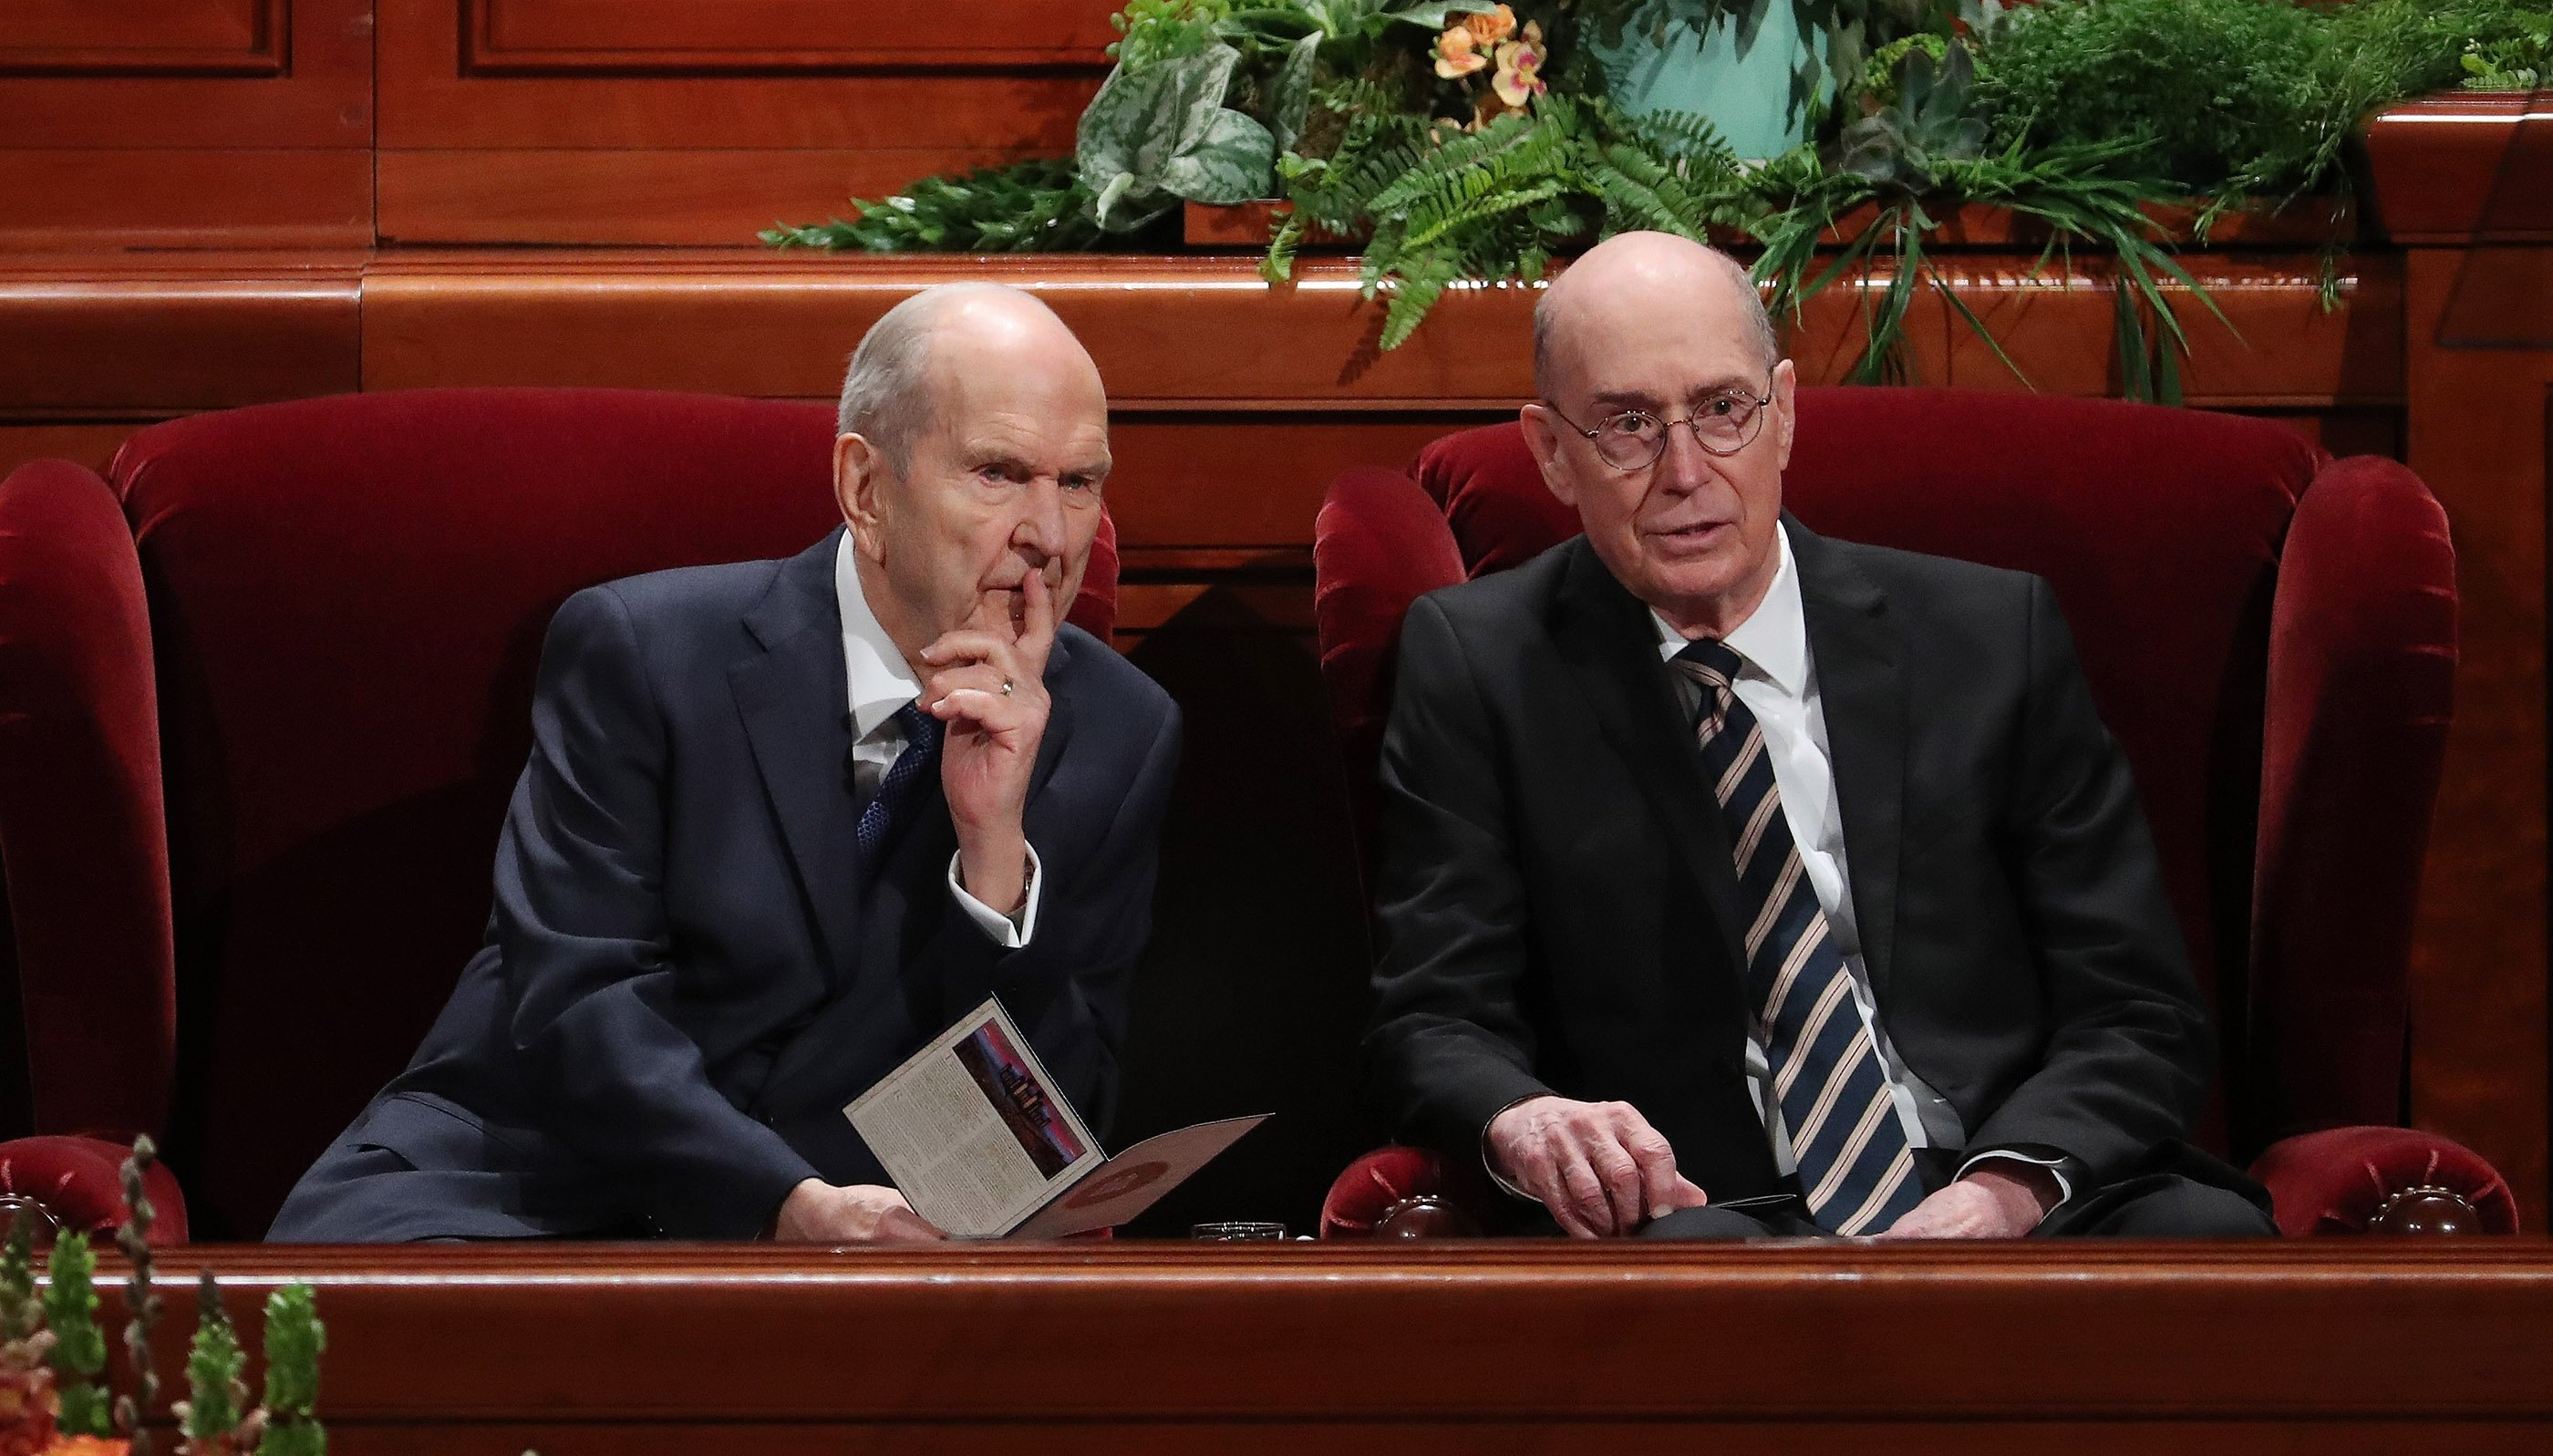 general-conference-rumors-october-2019